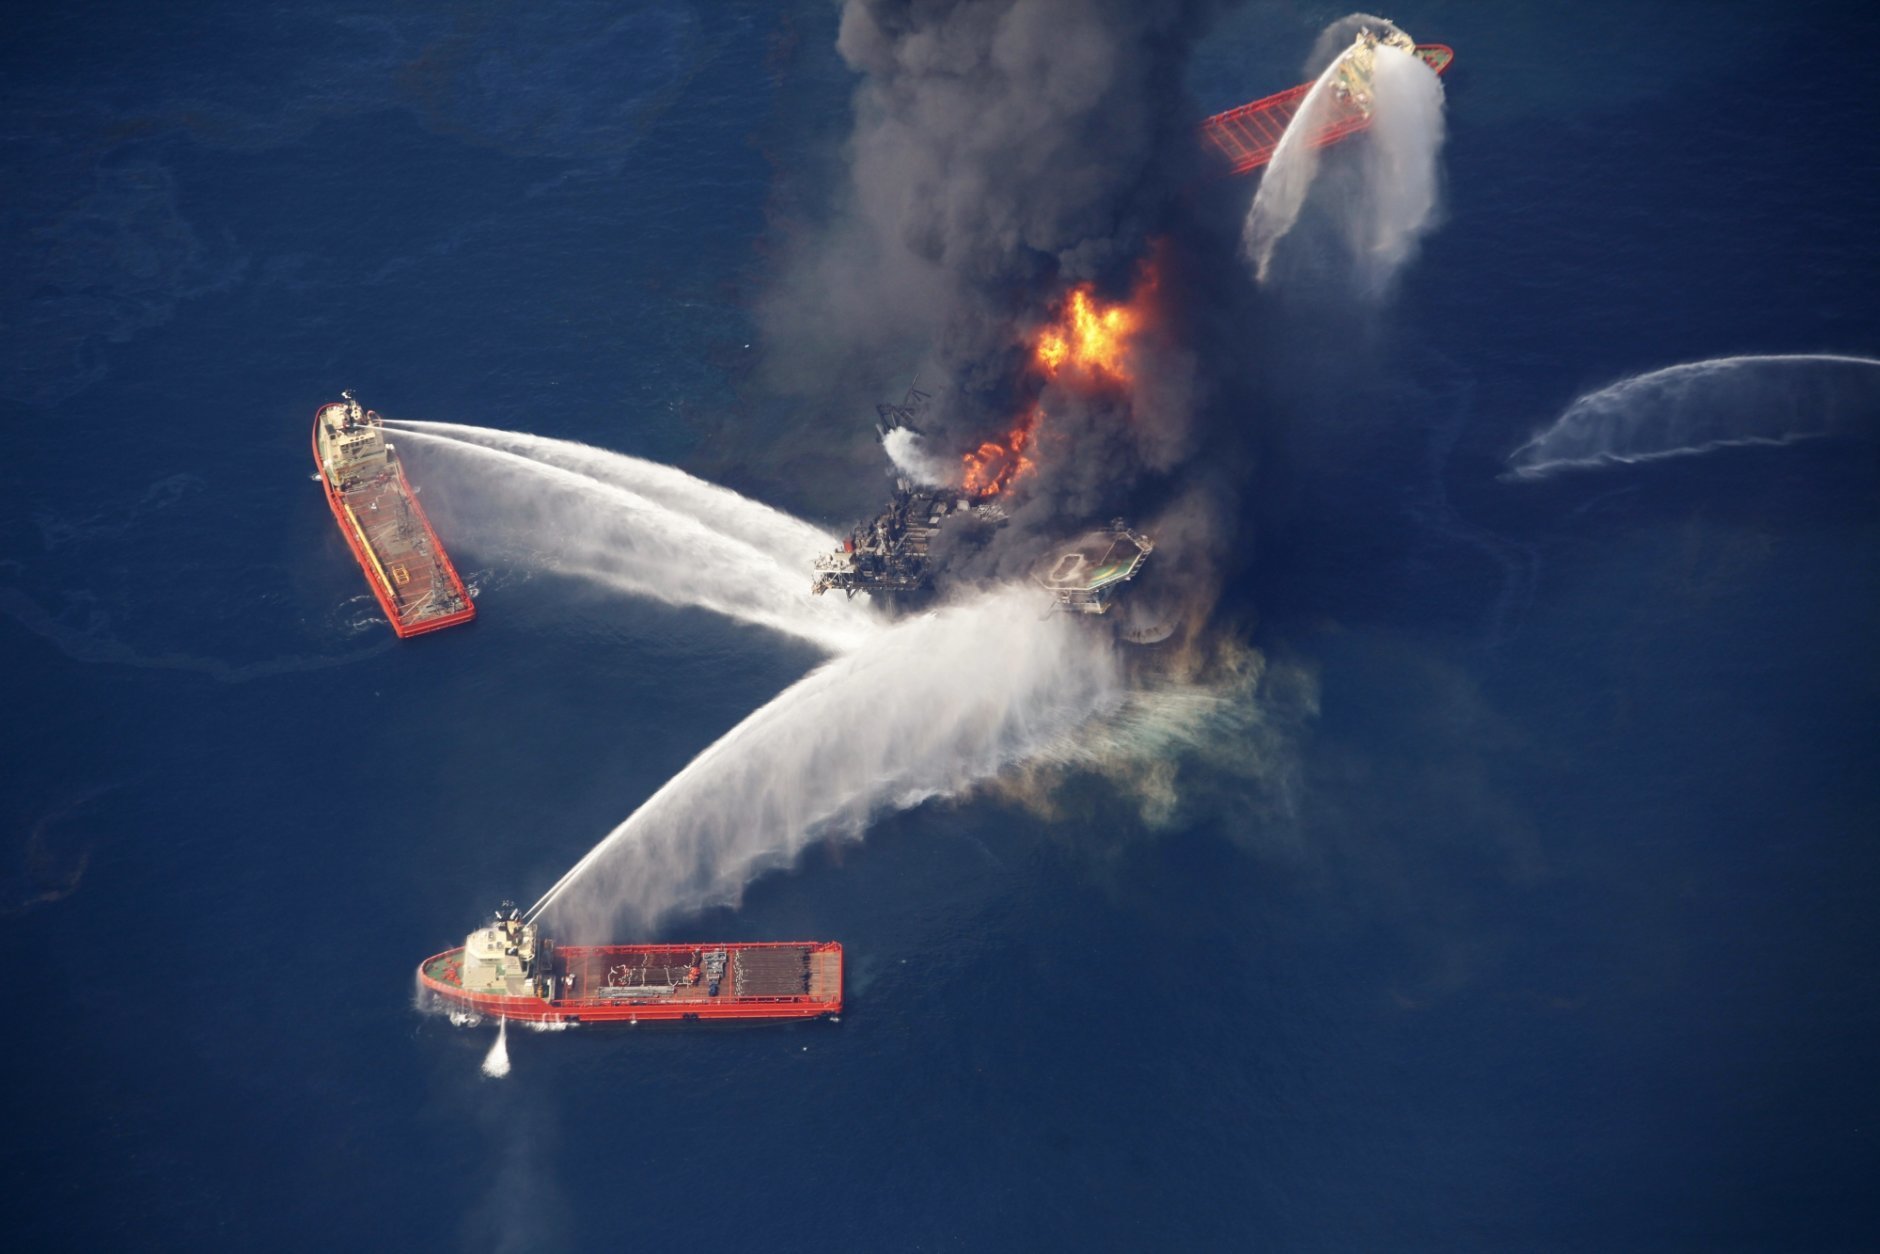 FILE - In this April 21, 2010, file photo, the Deepwater Horizon oil rig burns in the Gulf of Mexico following an explosion that killed 11 workers and caused the worst offshore oil spill in the nation's history. President Donald Trump is throwing out a policy devised by his predecessor for protecting U.S. oceans and the Great Lakes, replacing it with a new approach that emphasizes use of the waters to promote economic growth. President Barack Obama issued his policy in 2010 after the Deepwater Horizon oil spill in the Gulf of Mexico. Trump says it was too bureaucratic. (AP Photo/Gerald Herbert, File)